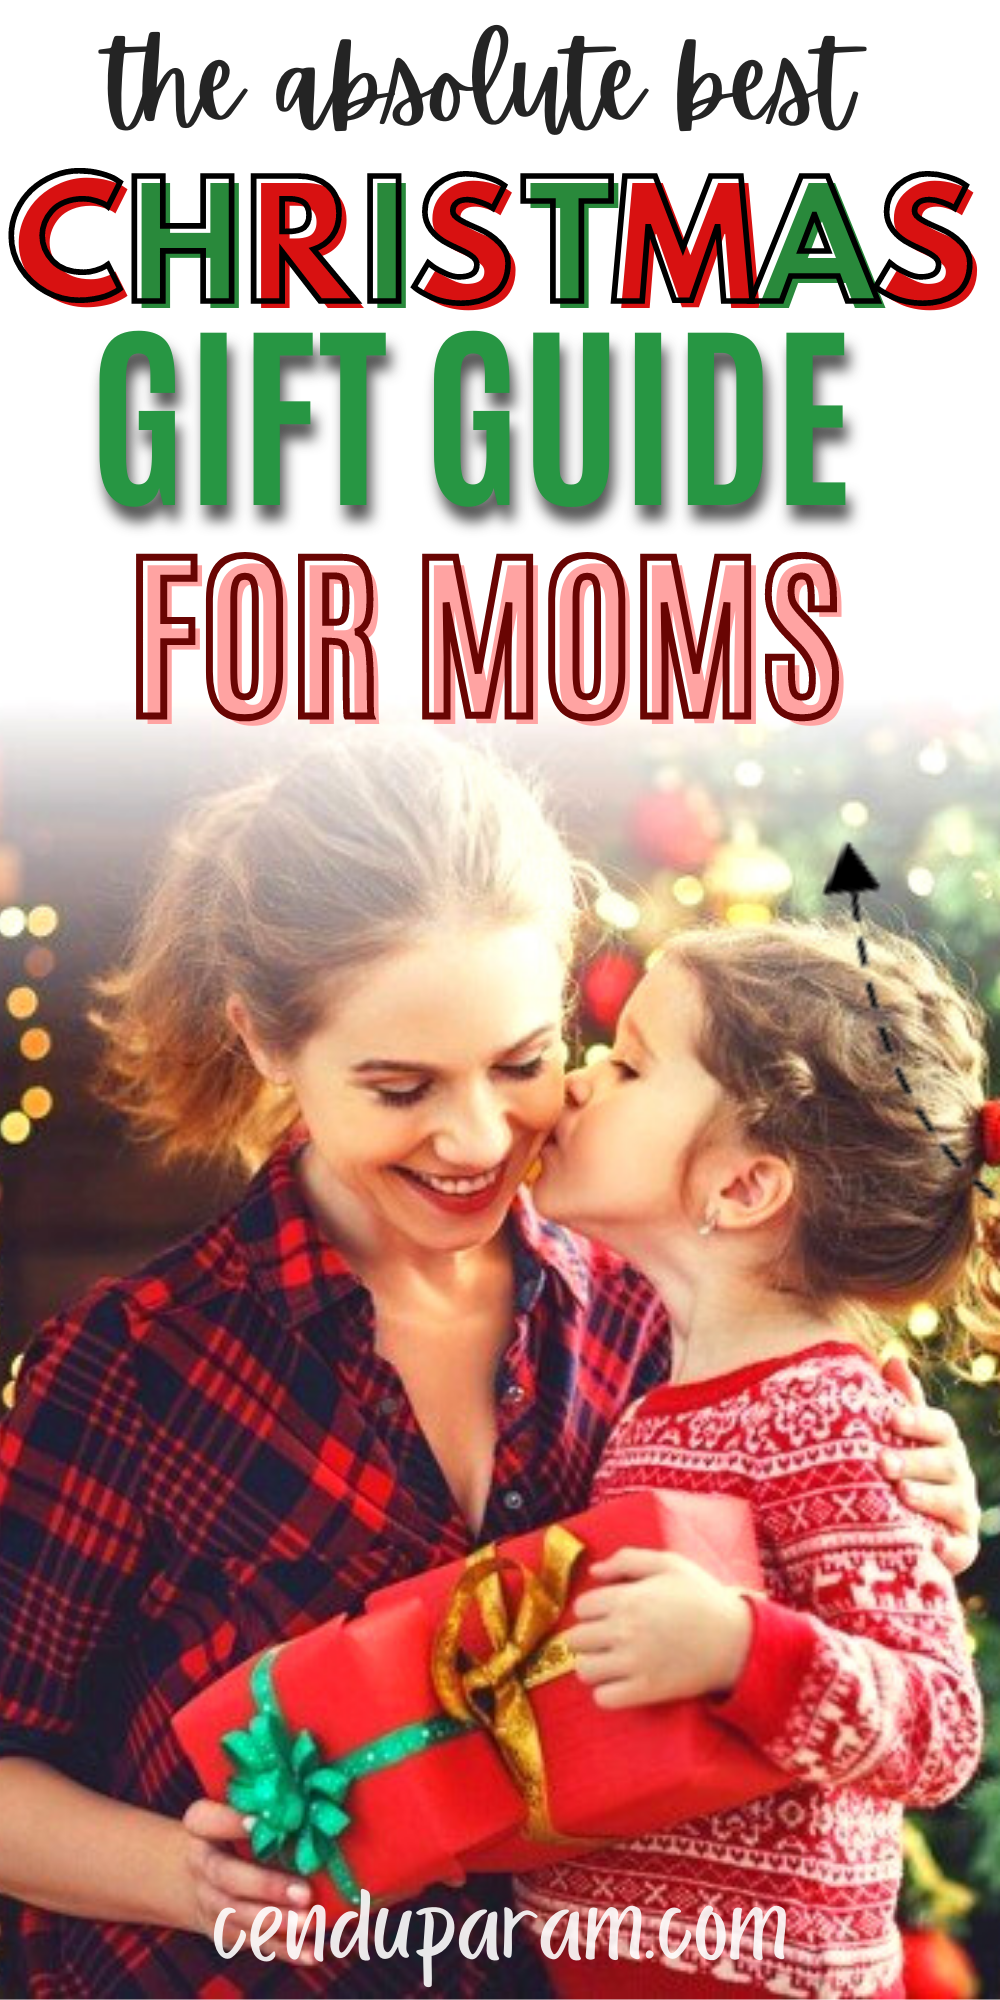 Christmas Gifts for Her (Mom Gift Guide) in 2020 | Christmas gift guide mom, Good presents for ...